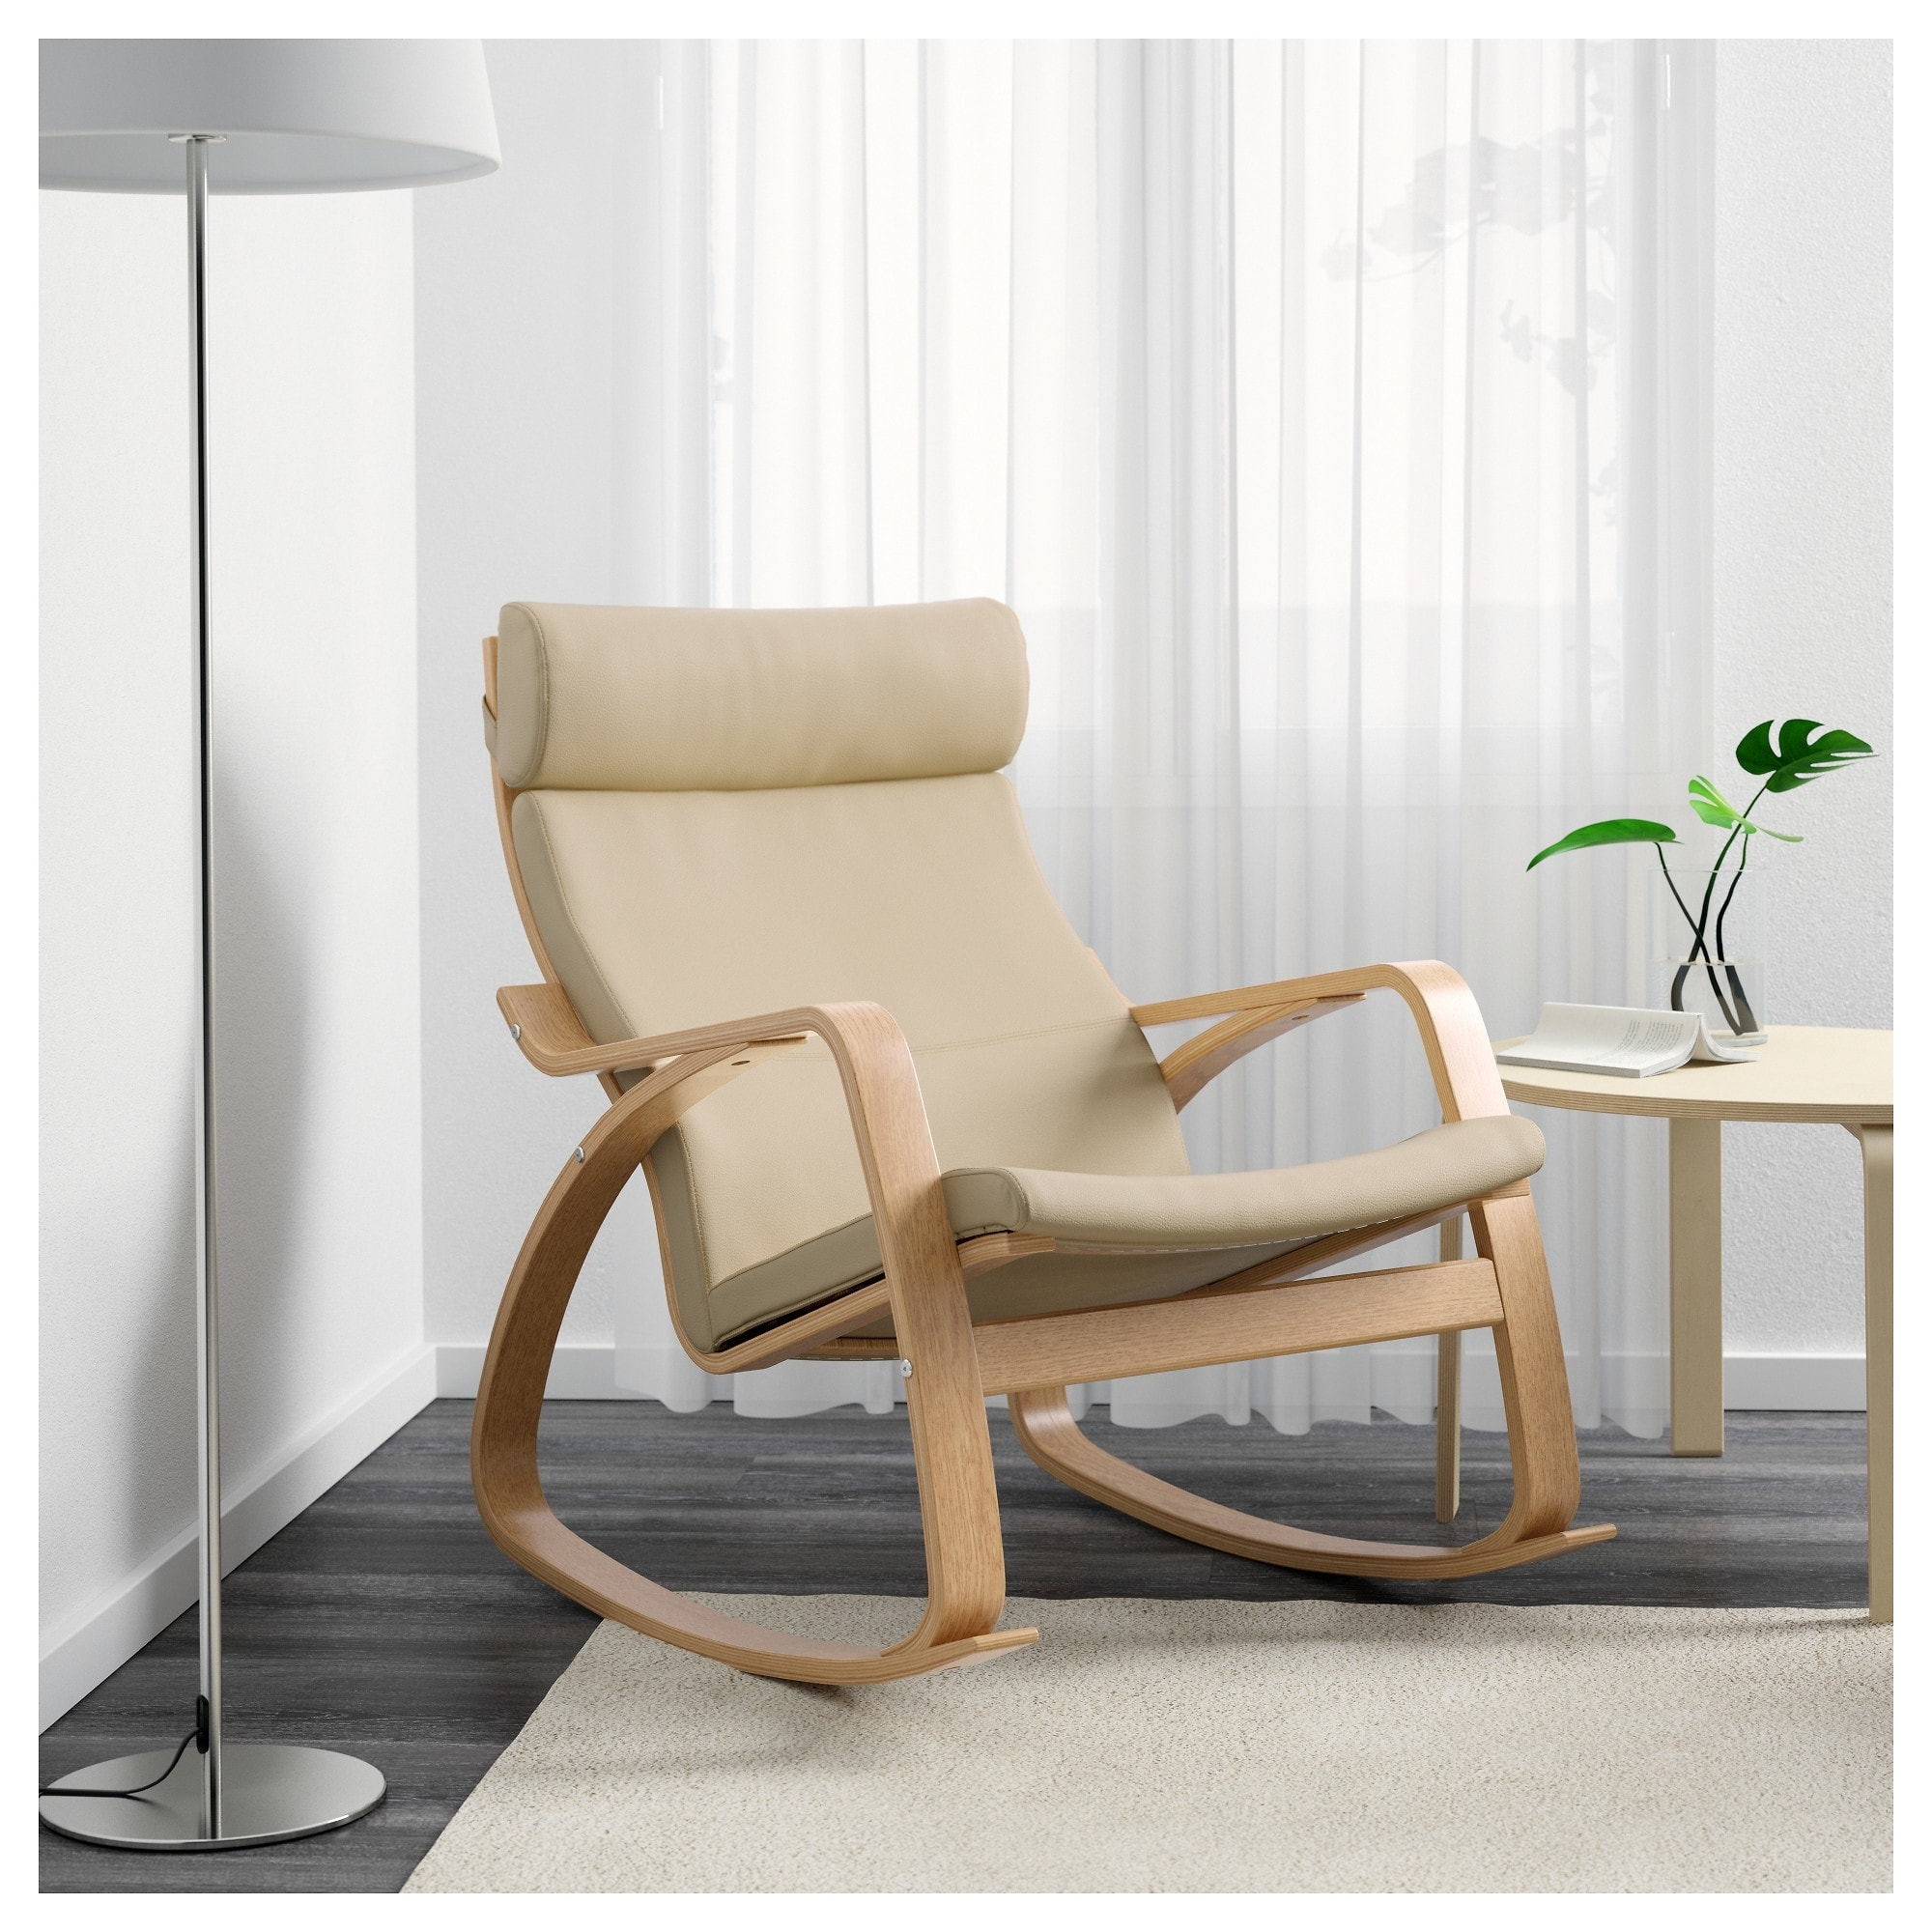 Most Recently Released Poäng Rocking Chair Oak Veneer/glose Eggshell – Ikea For High Back Rocking Chairs (View 12 of 15)